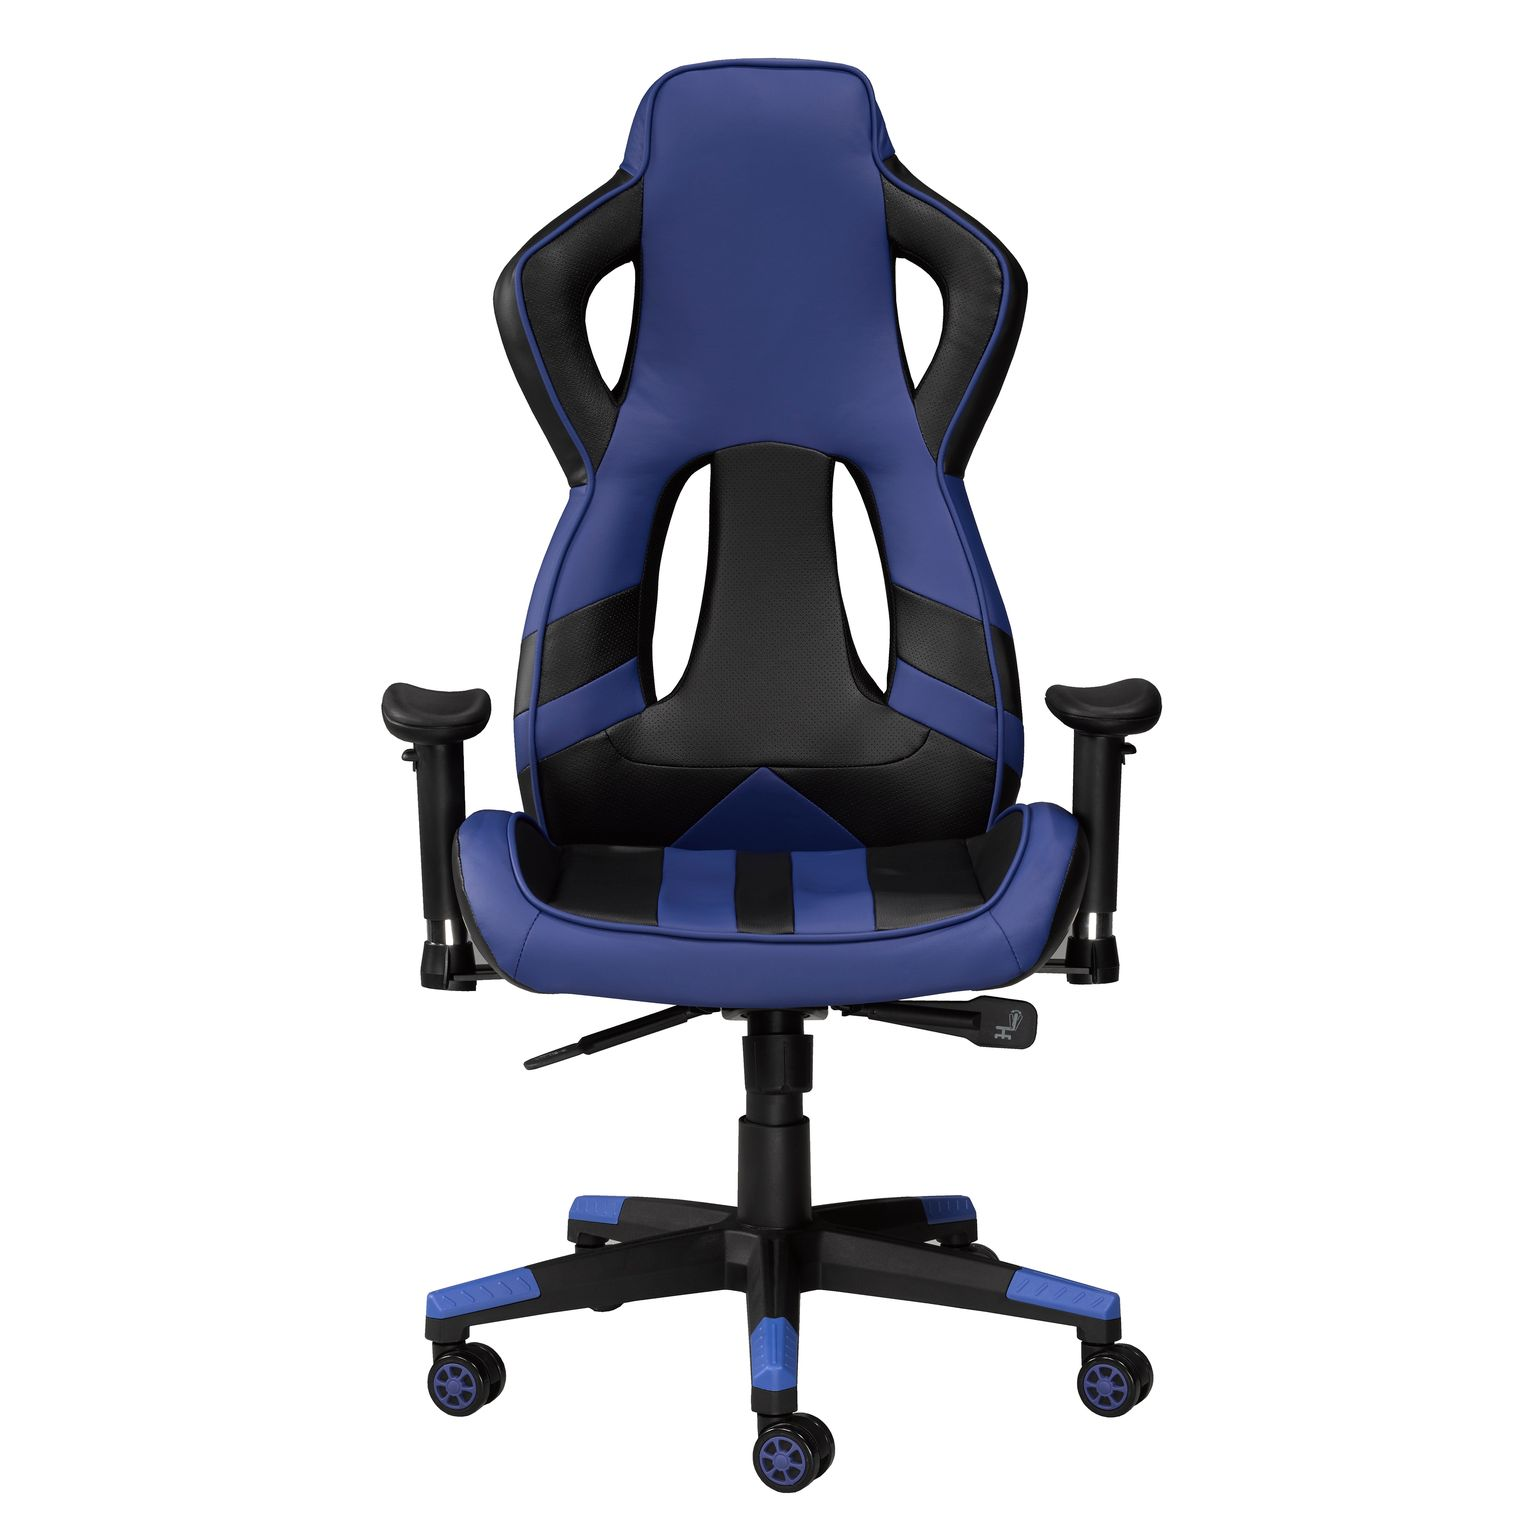 OFFICE CHAIR - BLACK/BLUE